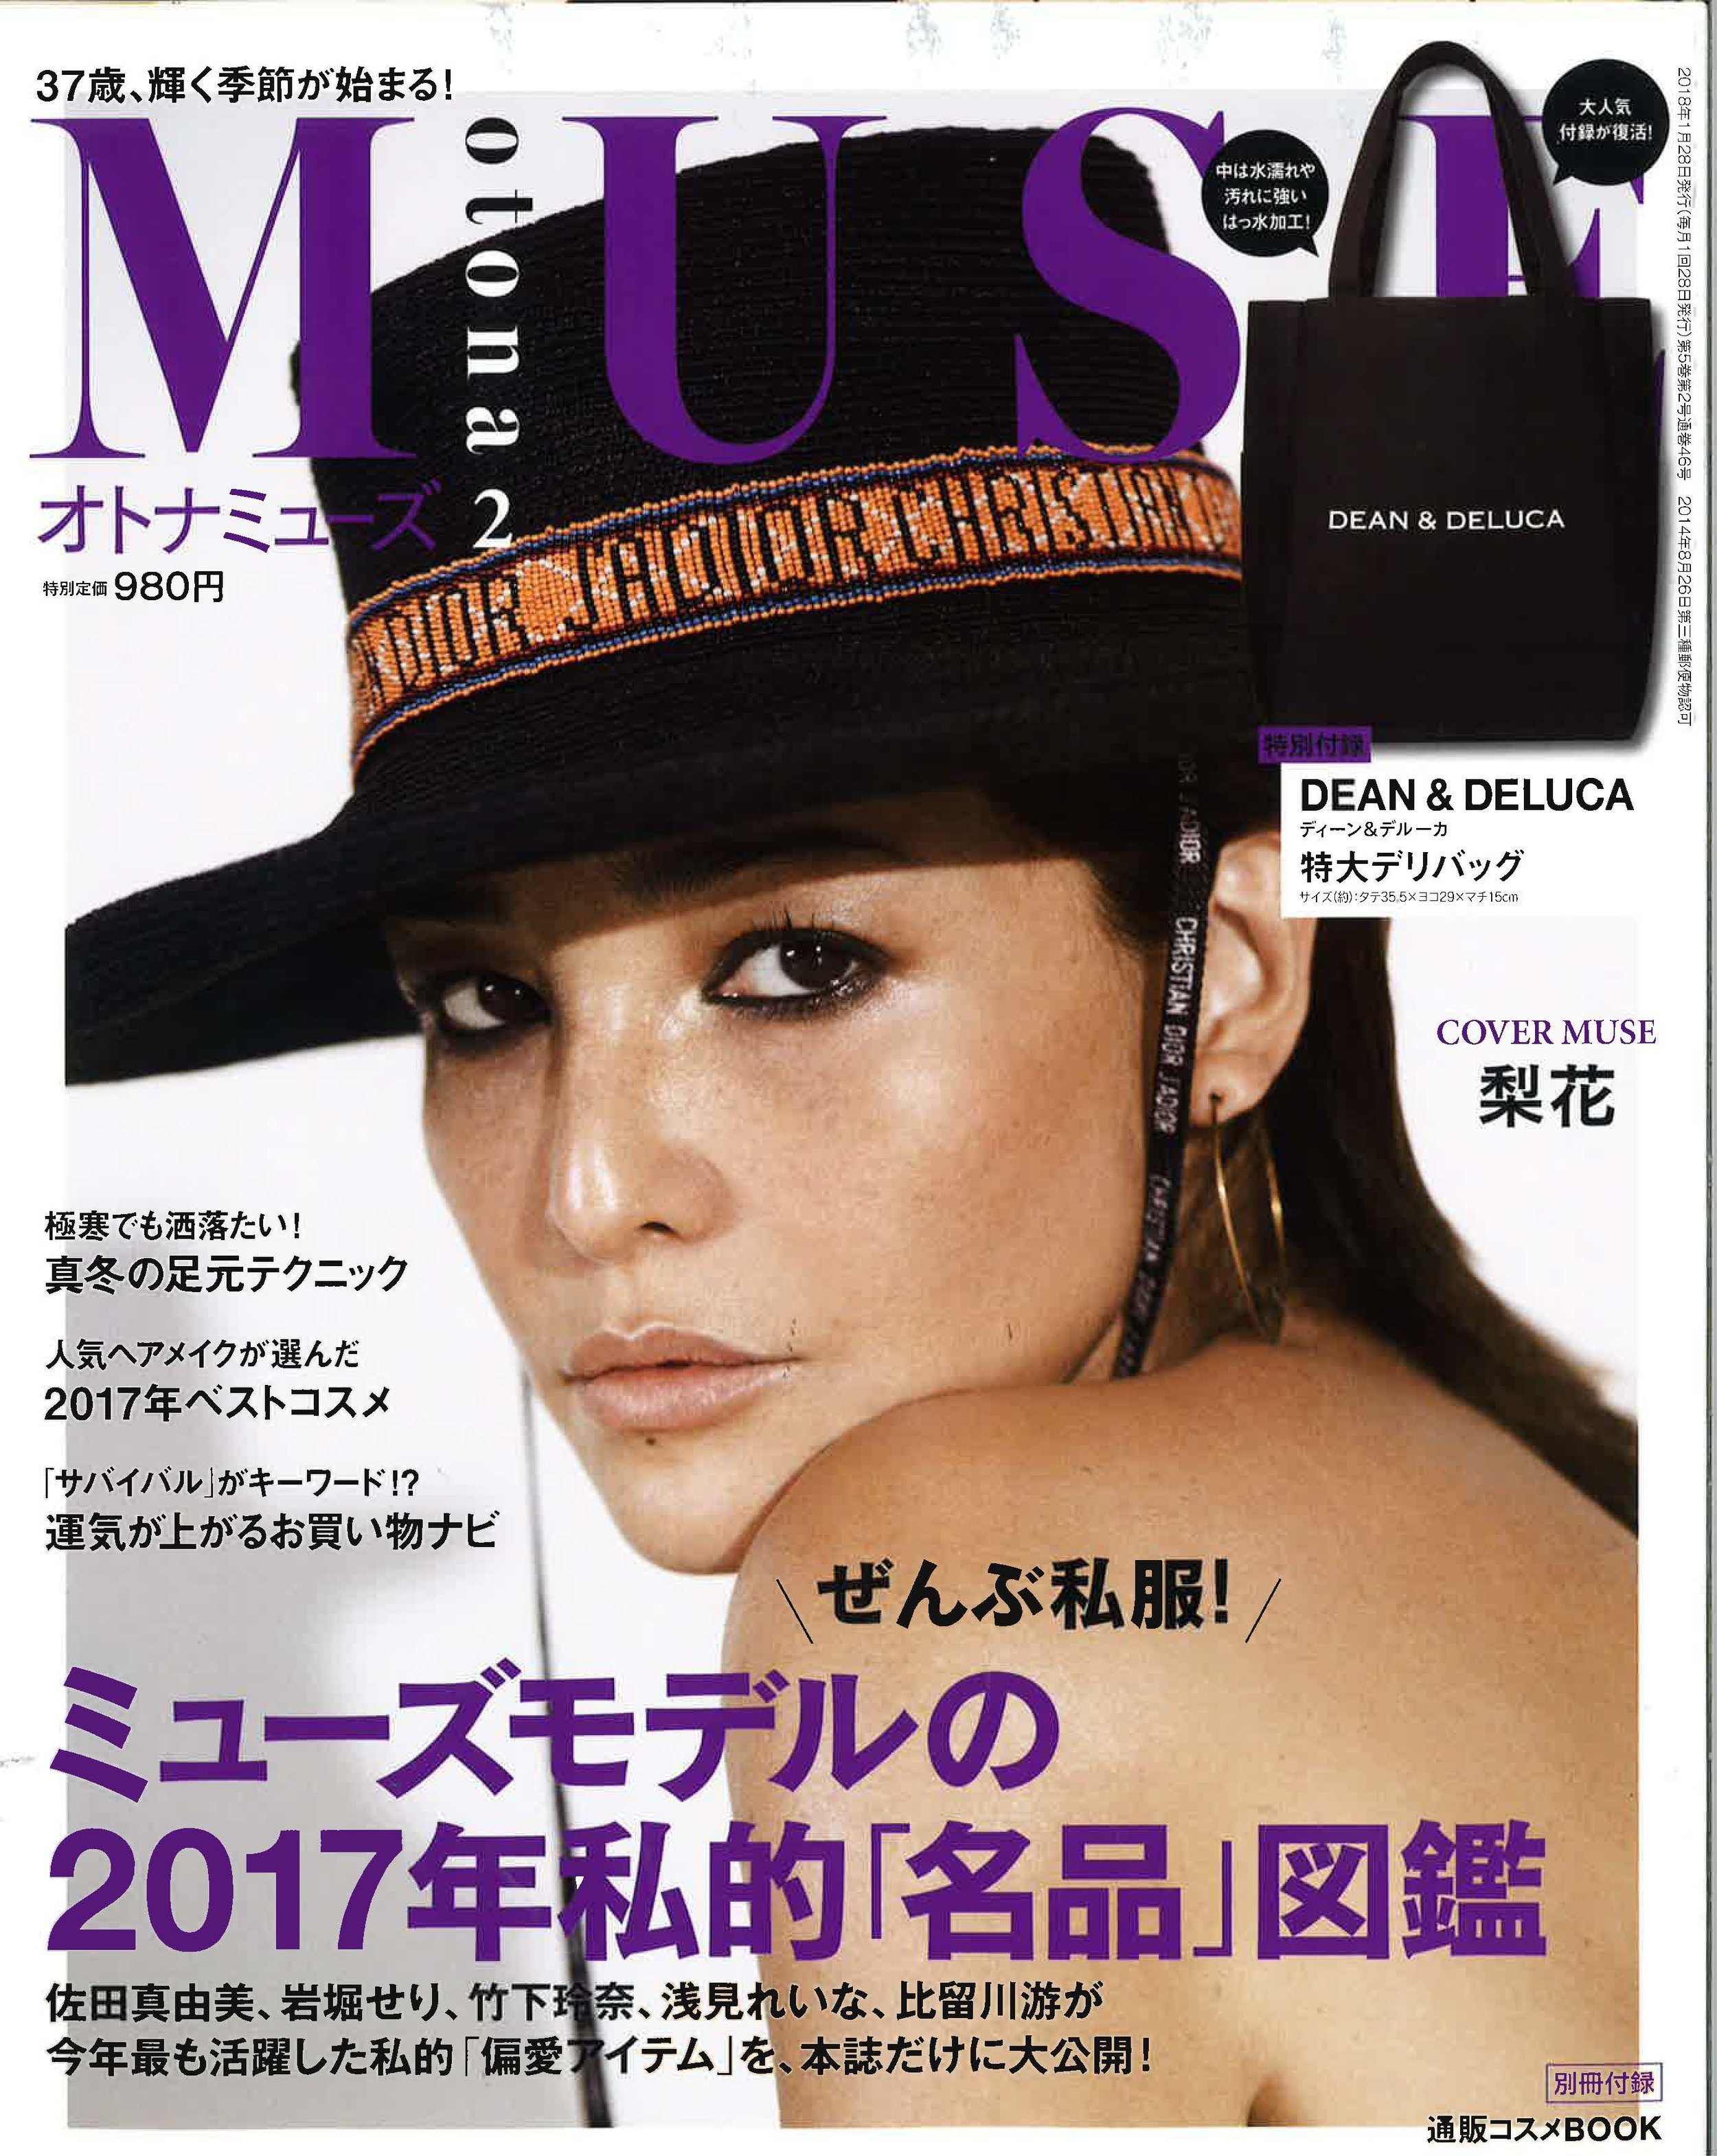 Pages from 【大人MUSE】2月号(12.28).jpg